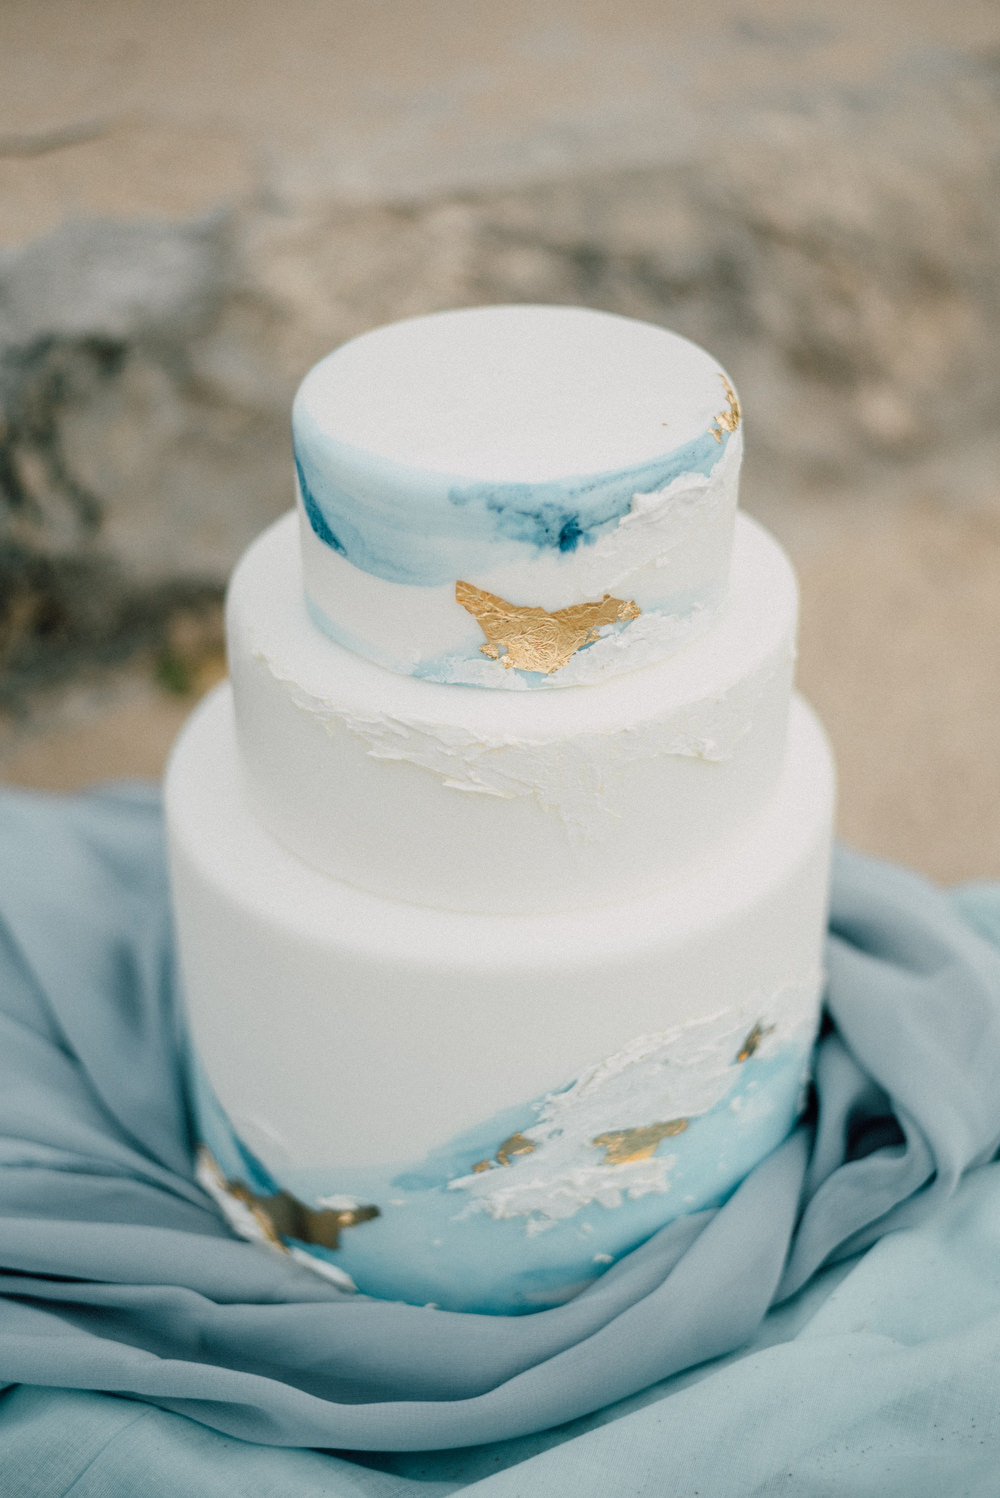 Outdoor Wild Nature Destination Spain Europe Beach Styled Shoot White Watercolor Brush Cake Gold Leaf | Blue Ibiza Elopement Ideas and Surprise Proposal Serena Genovese Photography